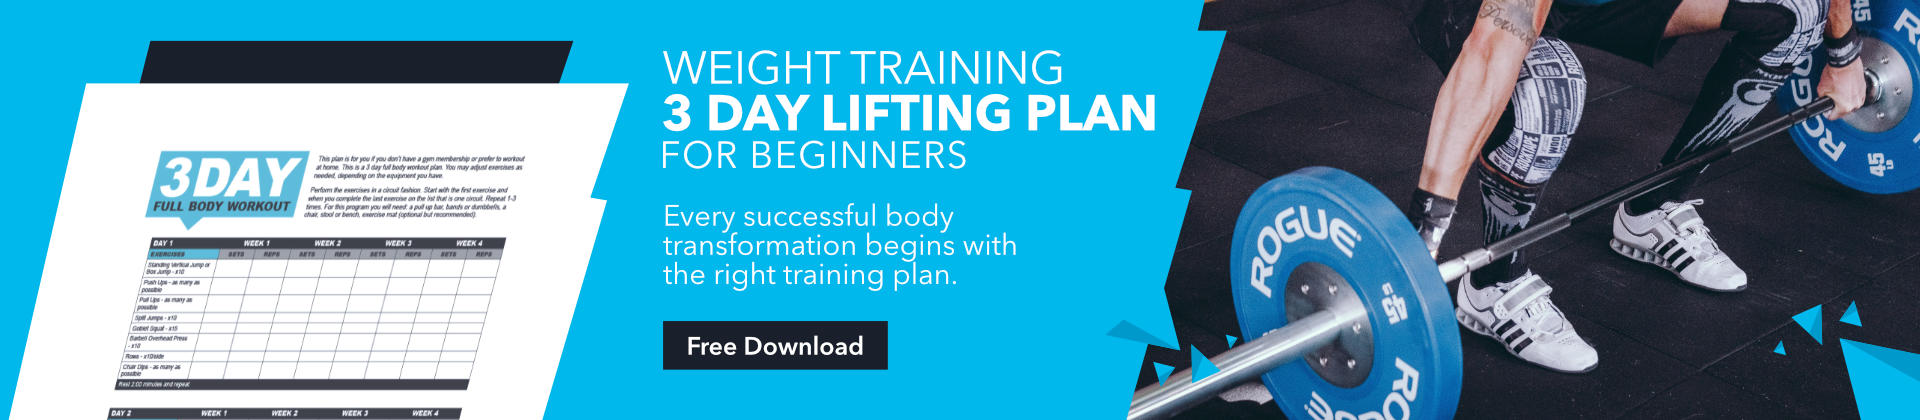 3 day weight lifting plan, weight lifting for beginners, skinny muscles, fitness blog